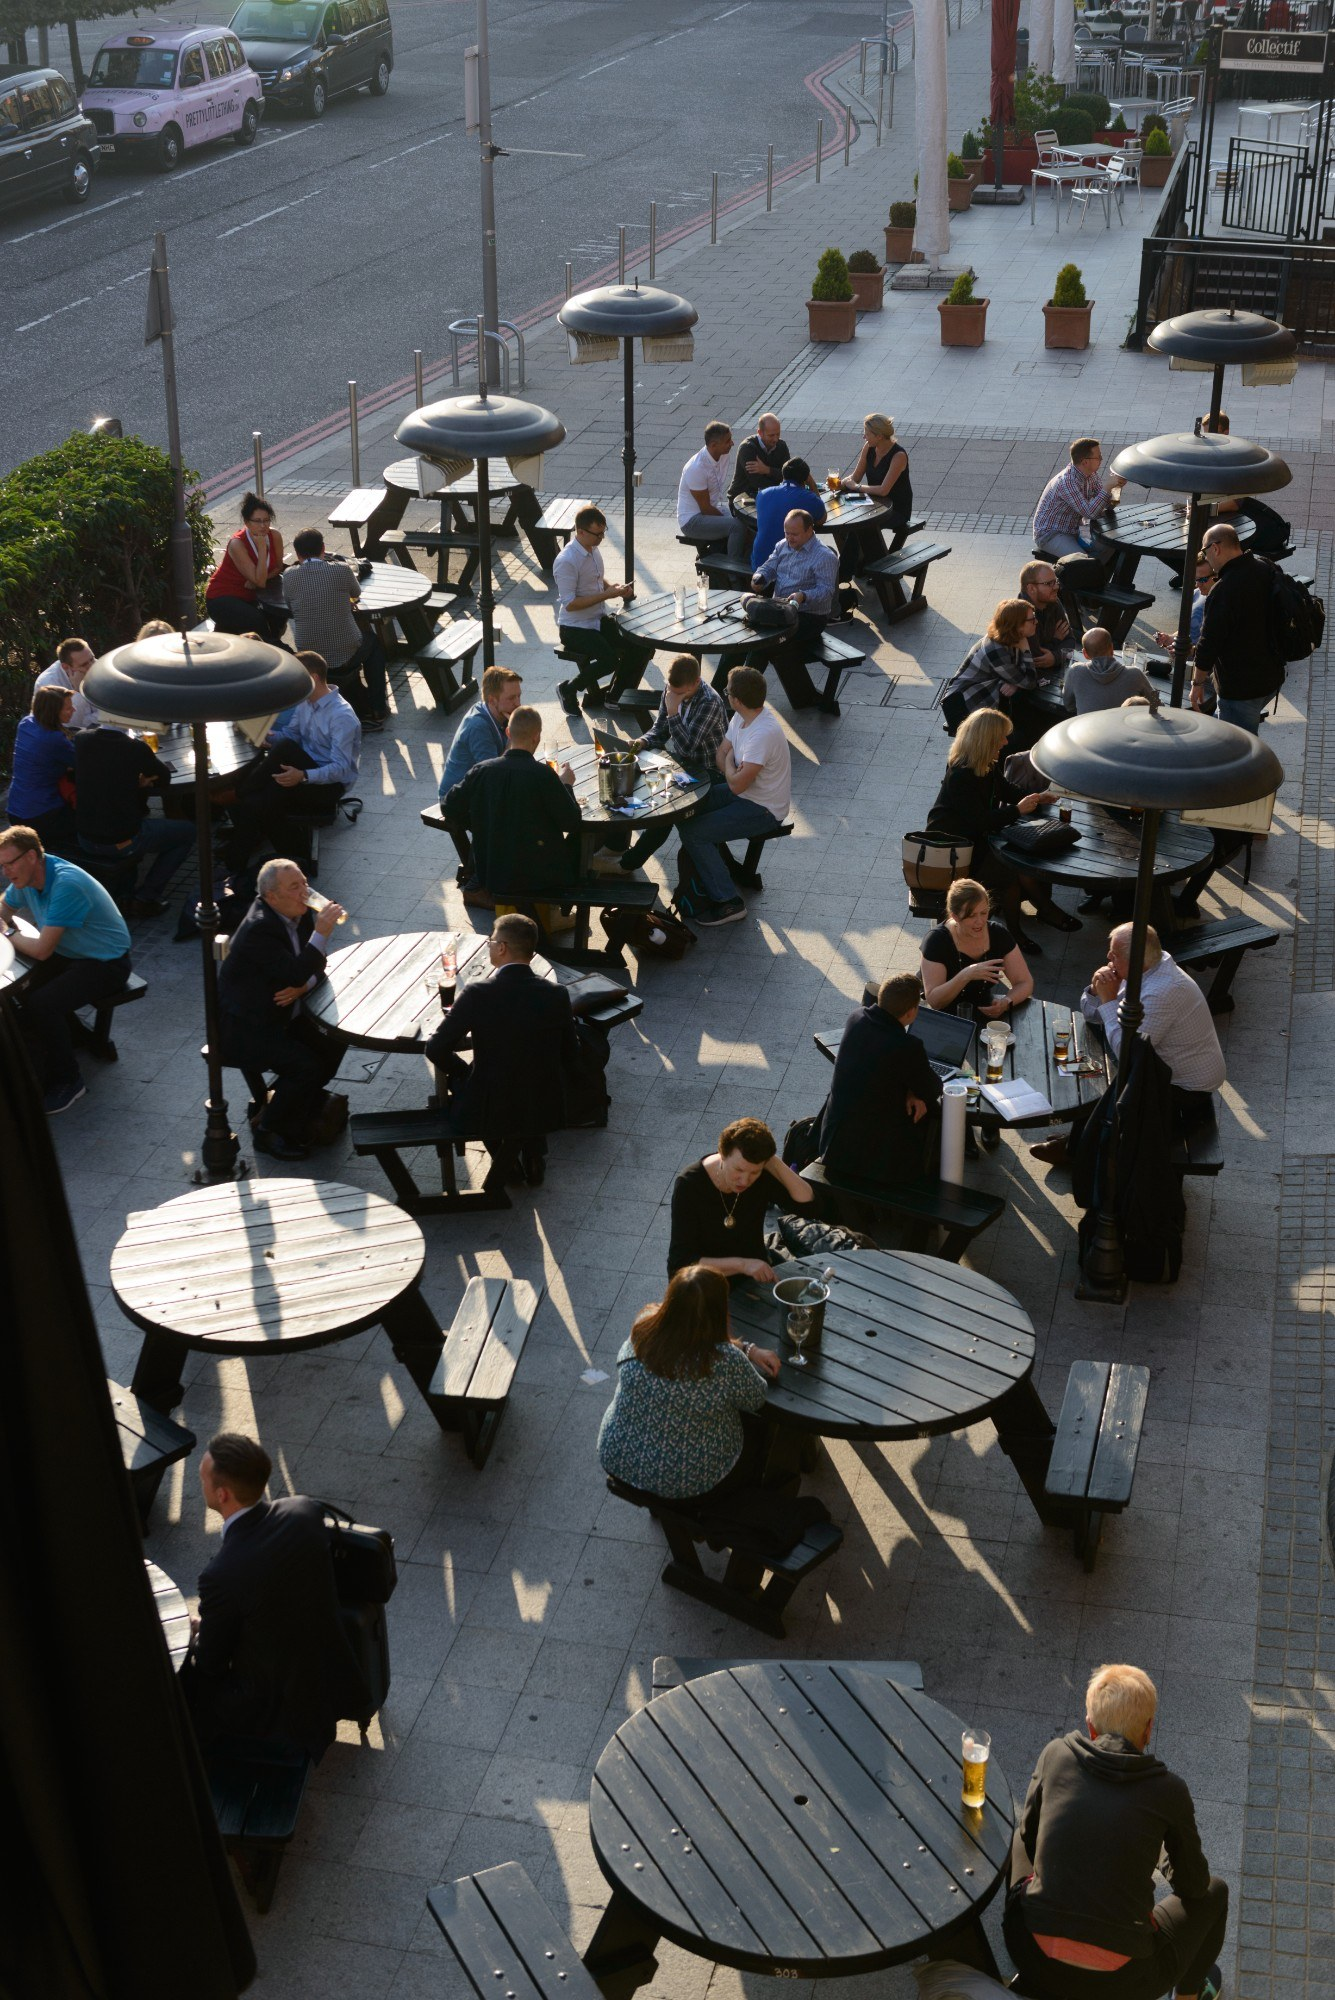 People sat at tables outdoors near ExCeL